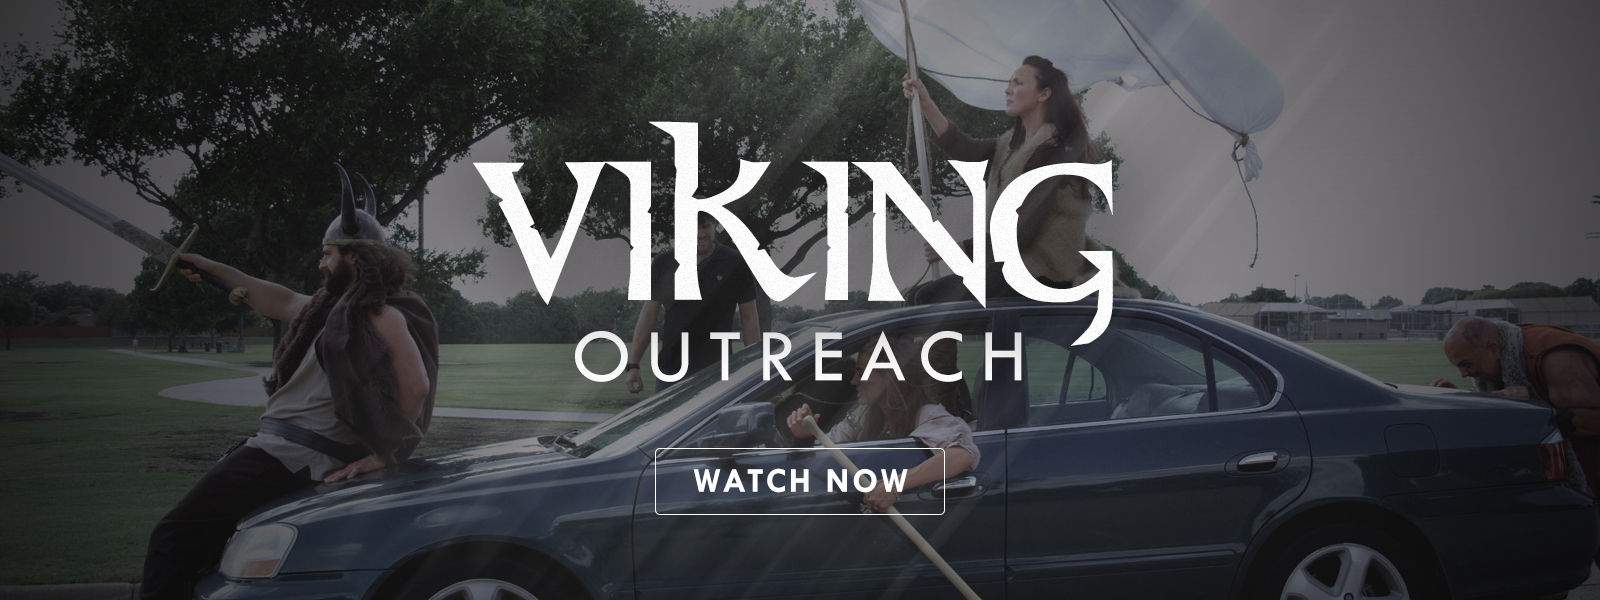 Viking Outreach